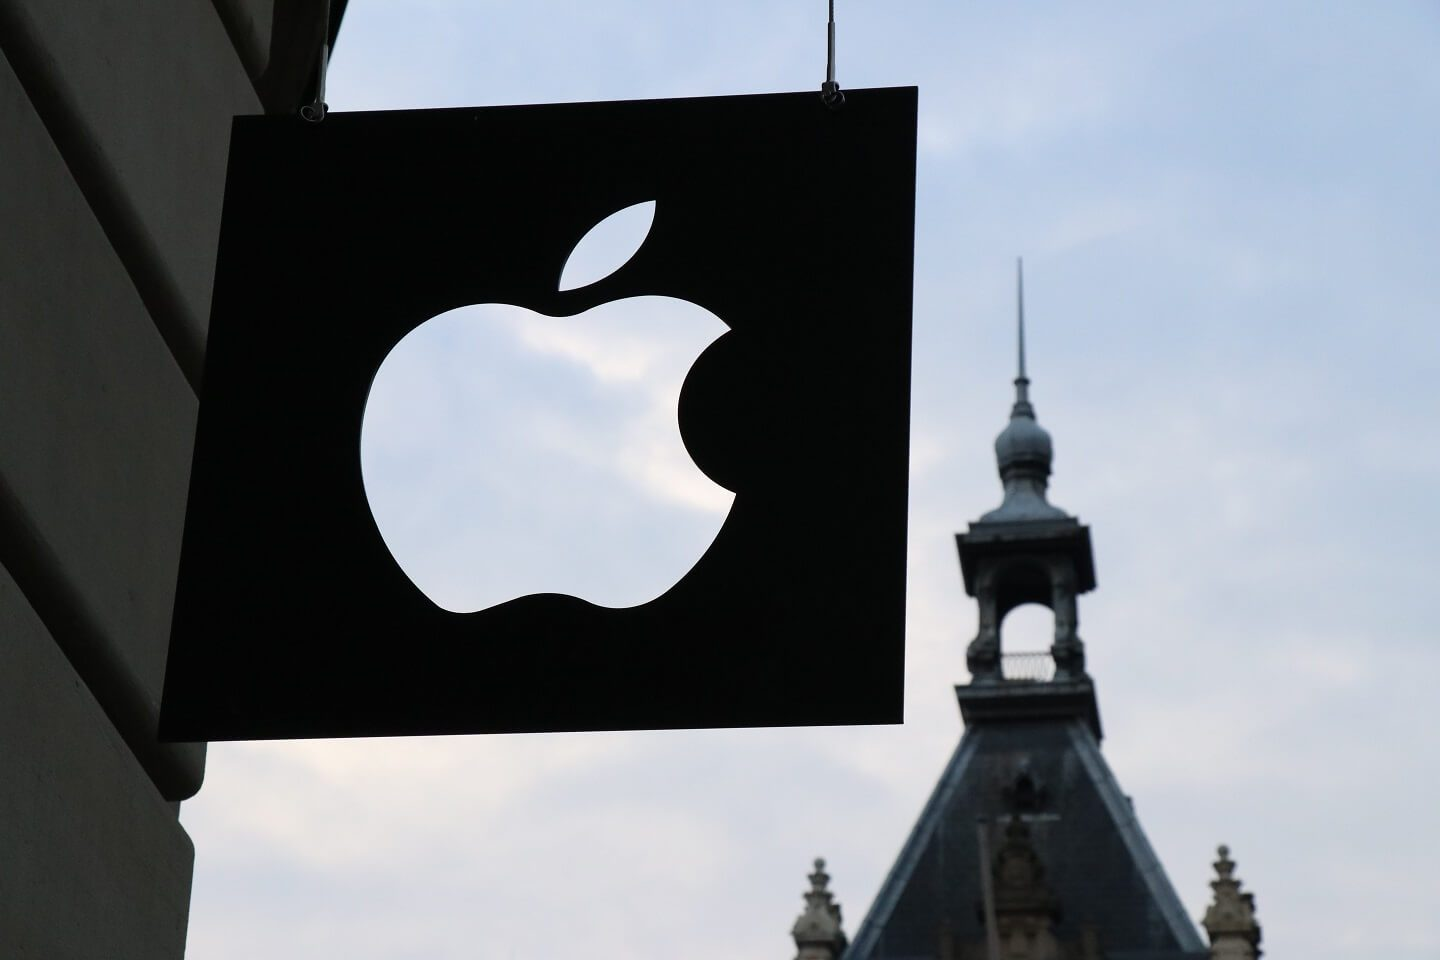 An apple storefront black sign with the apple logo cut out of it.